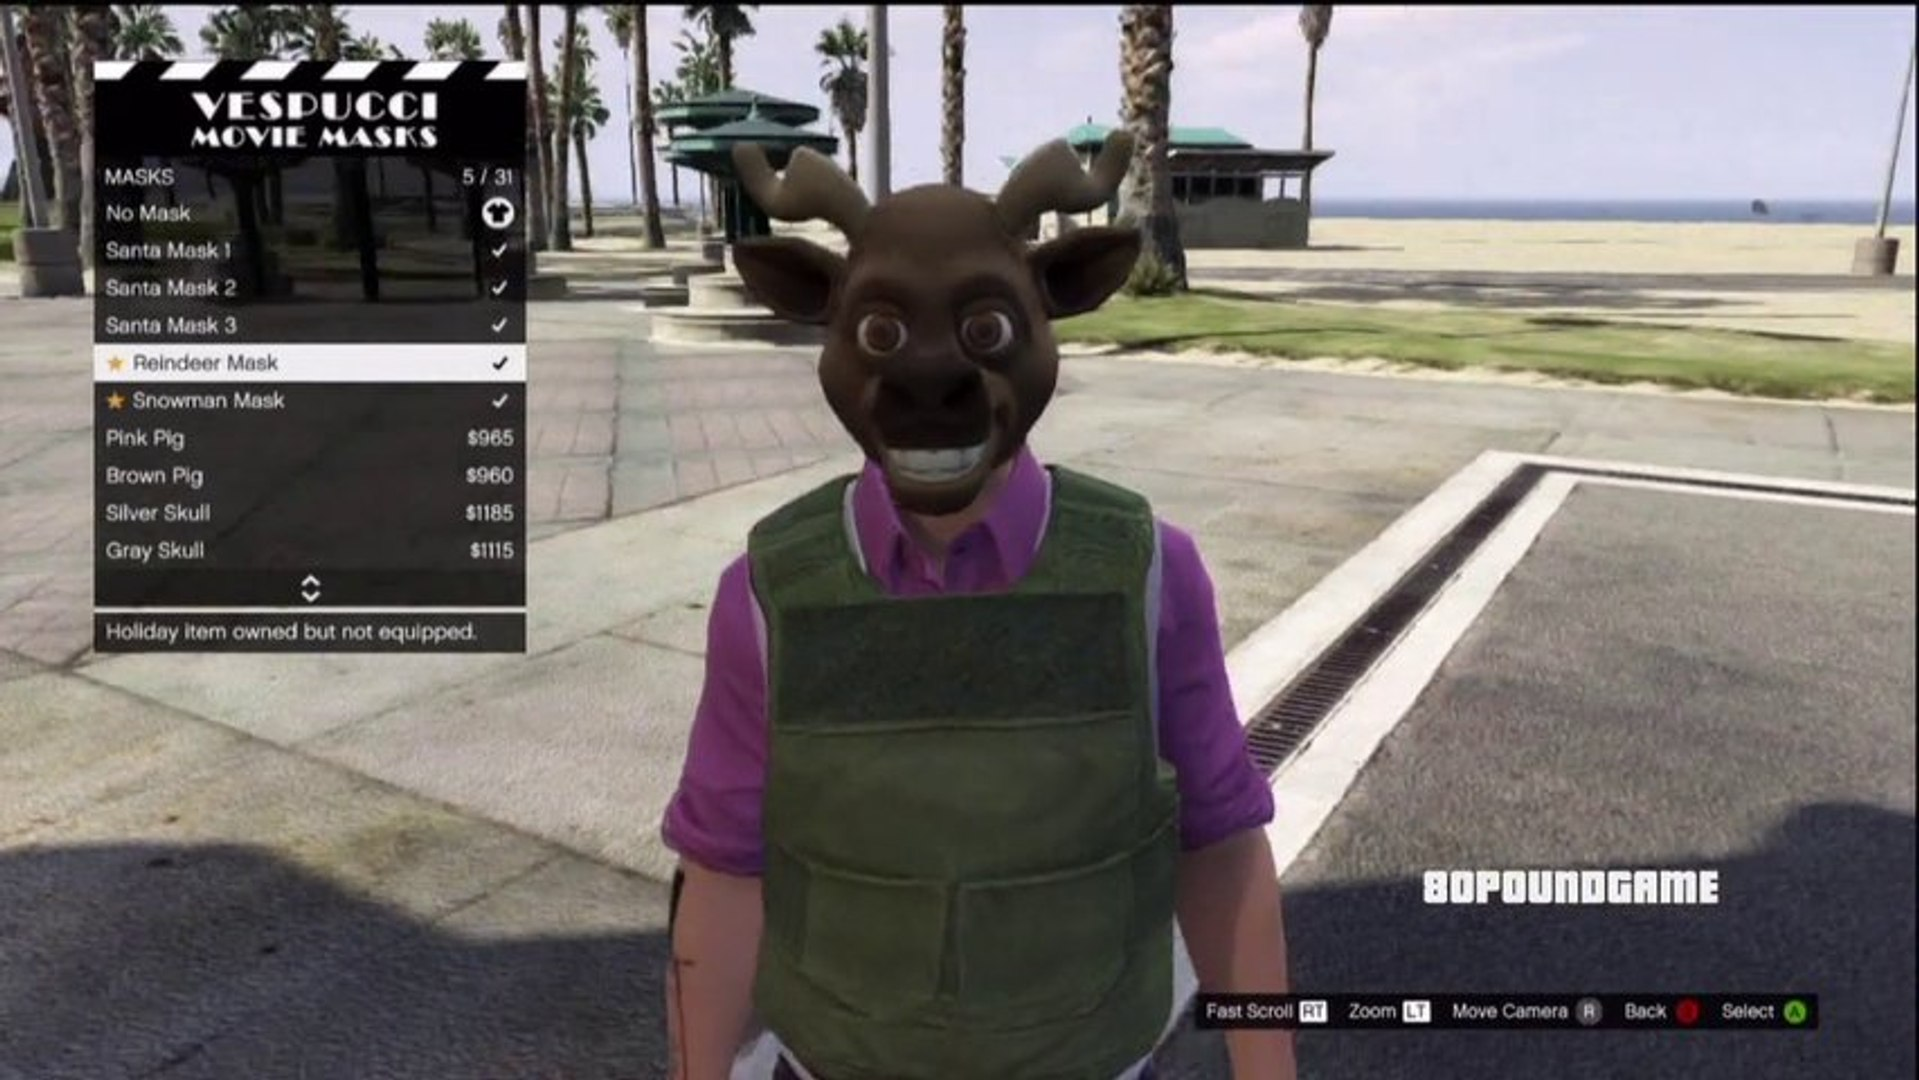 Gta 5 Online Christmas Masks.Gta Online Christmas Gifts Masks Snow Clothes